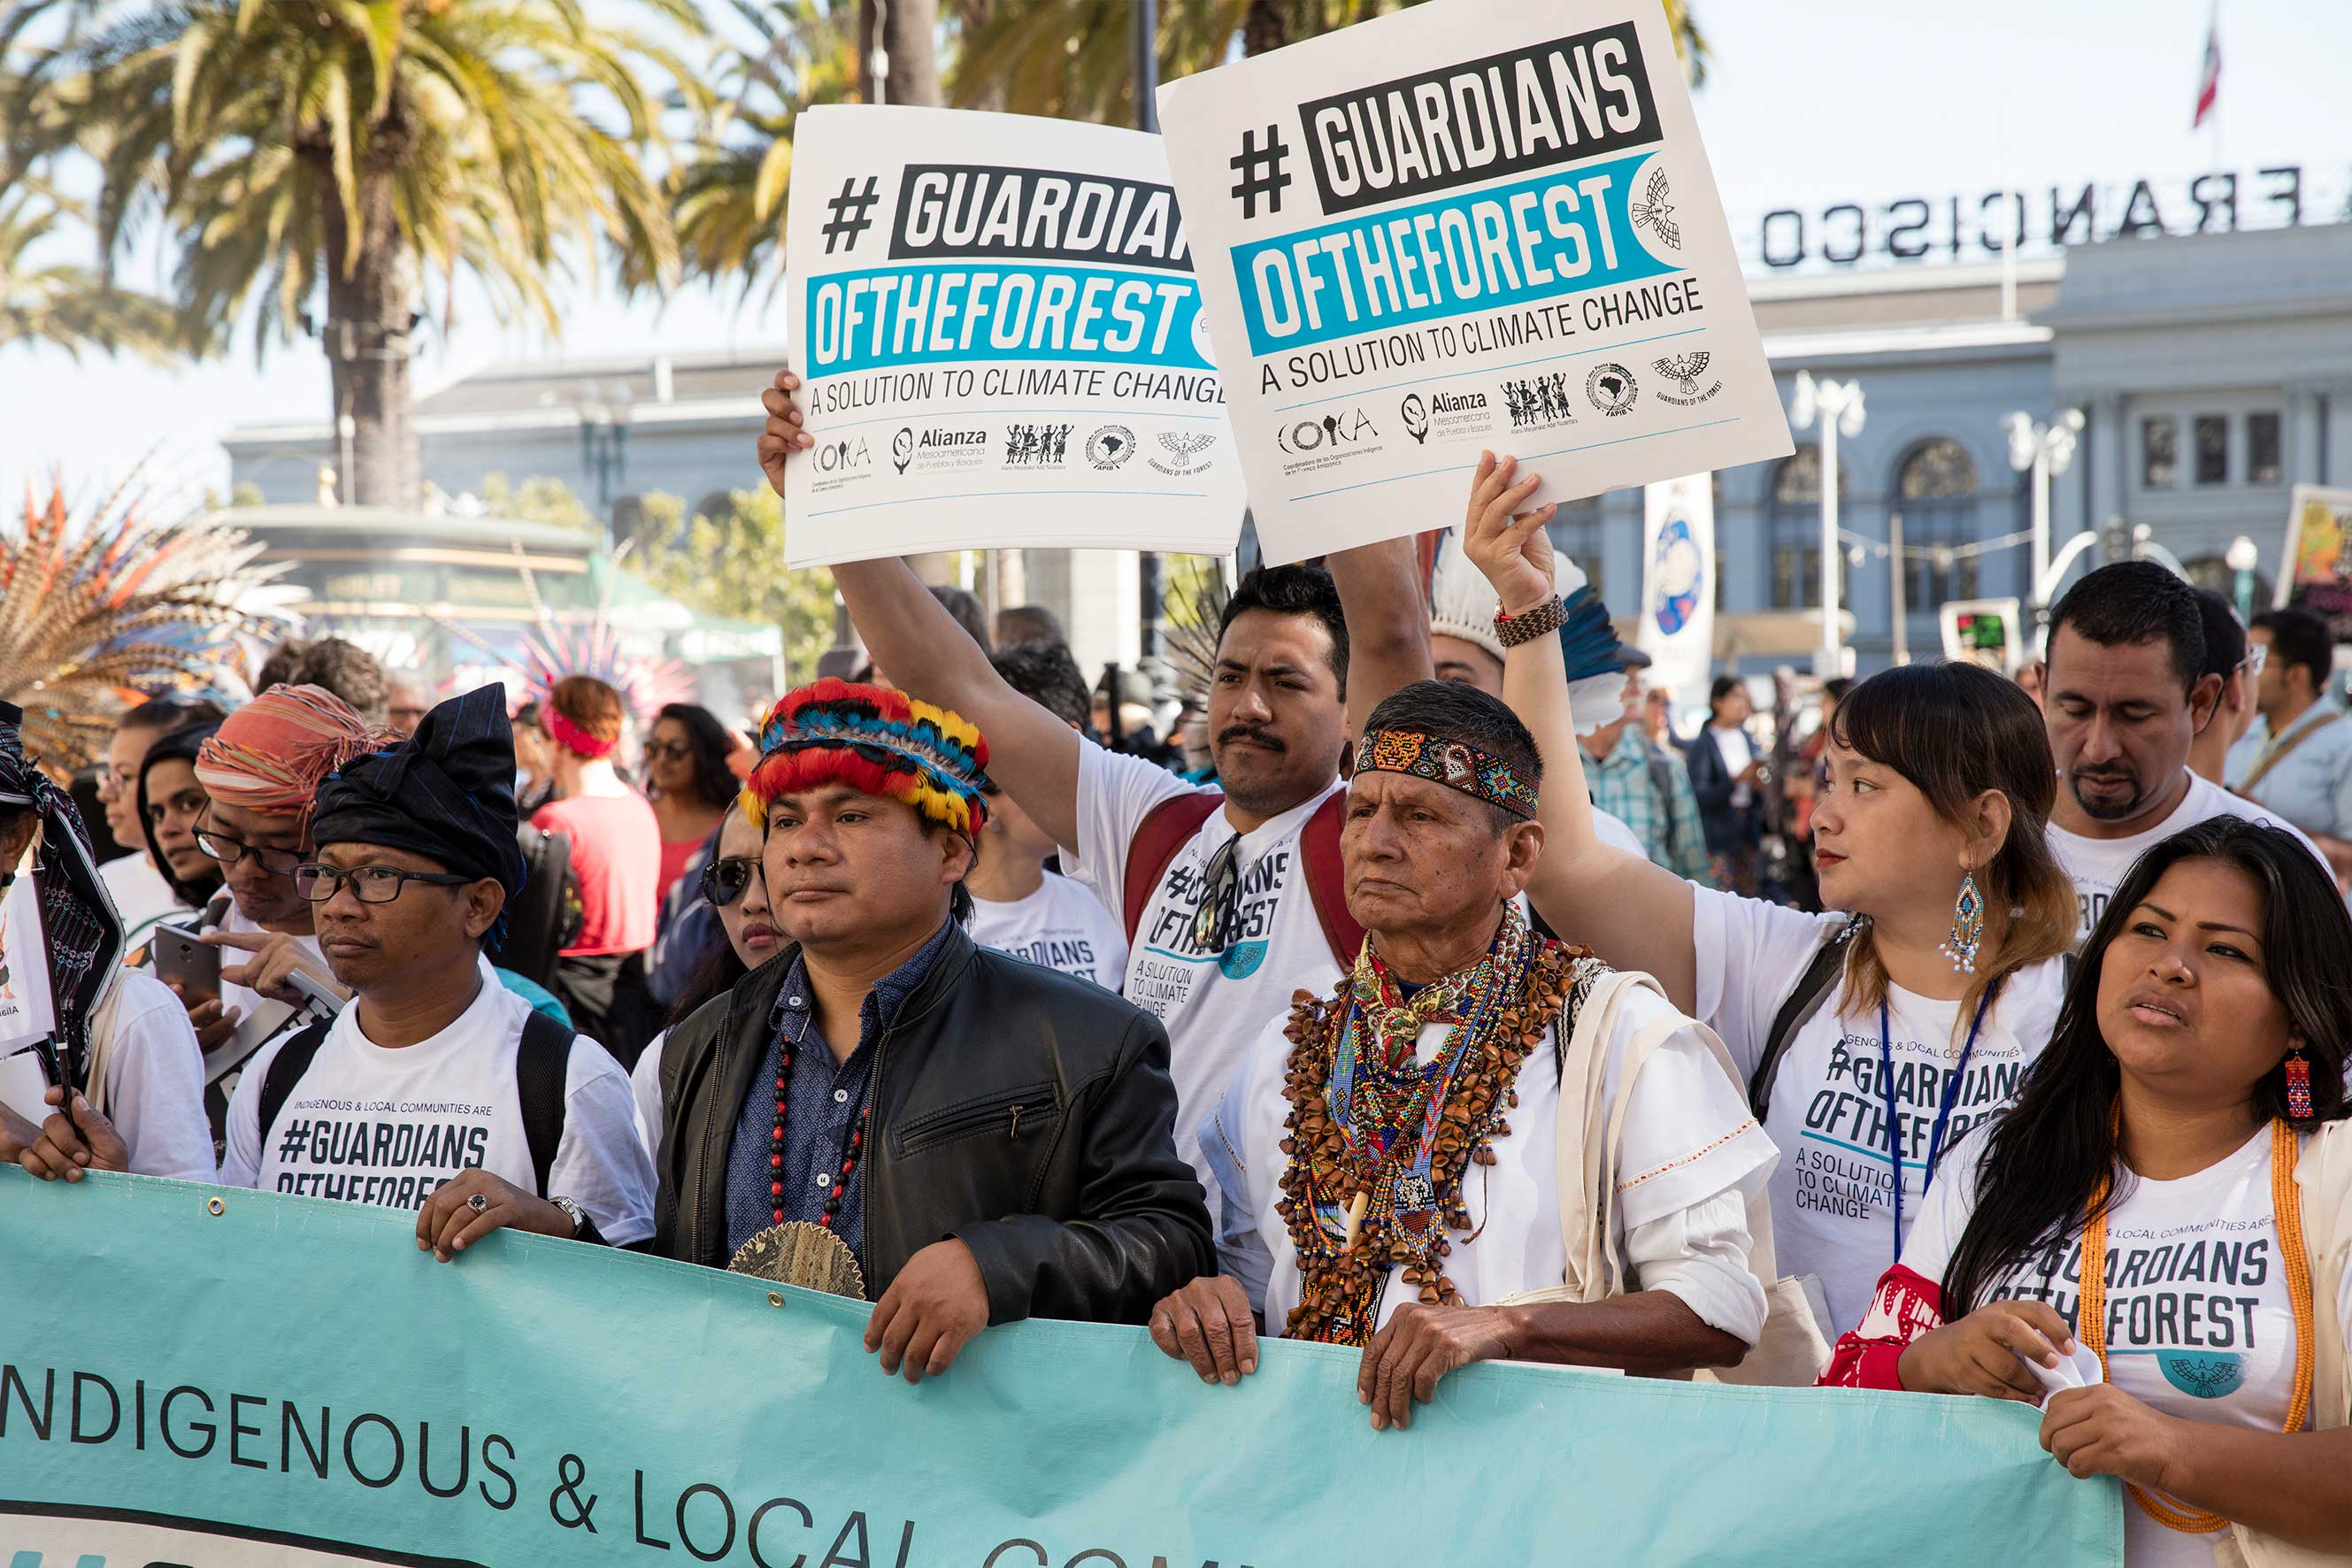 A group of indigenous leaders holds a large sign with the text Guardians of the forest during the 2018 Global Climate Action Summit  march in San Francisco.